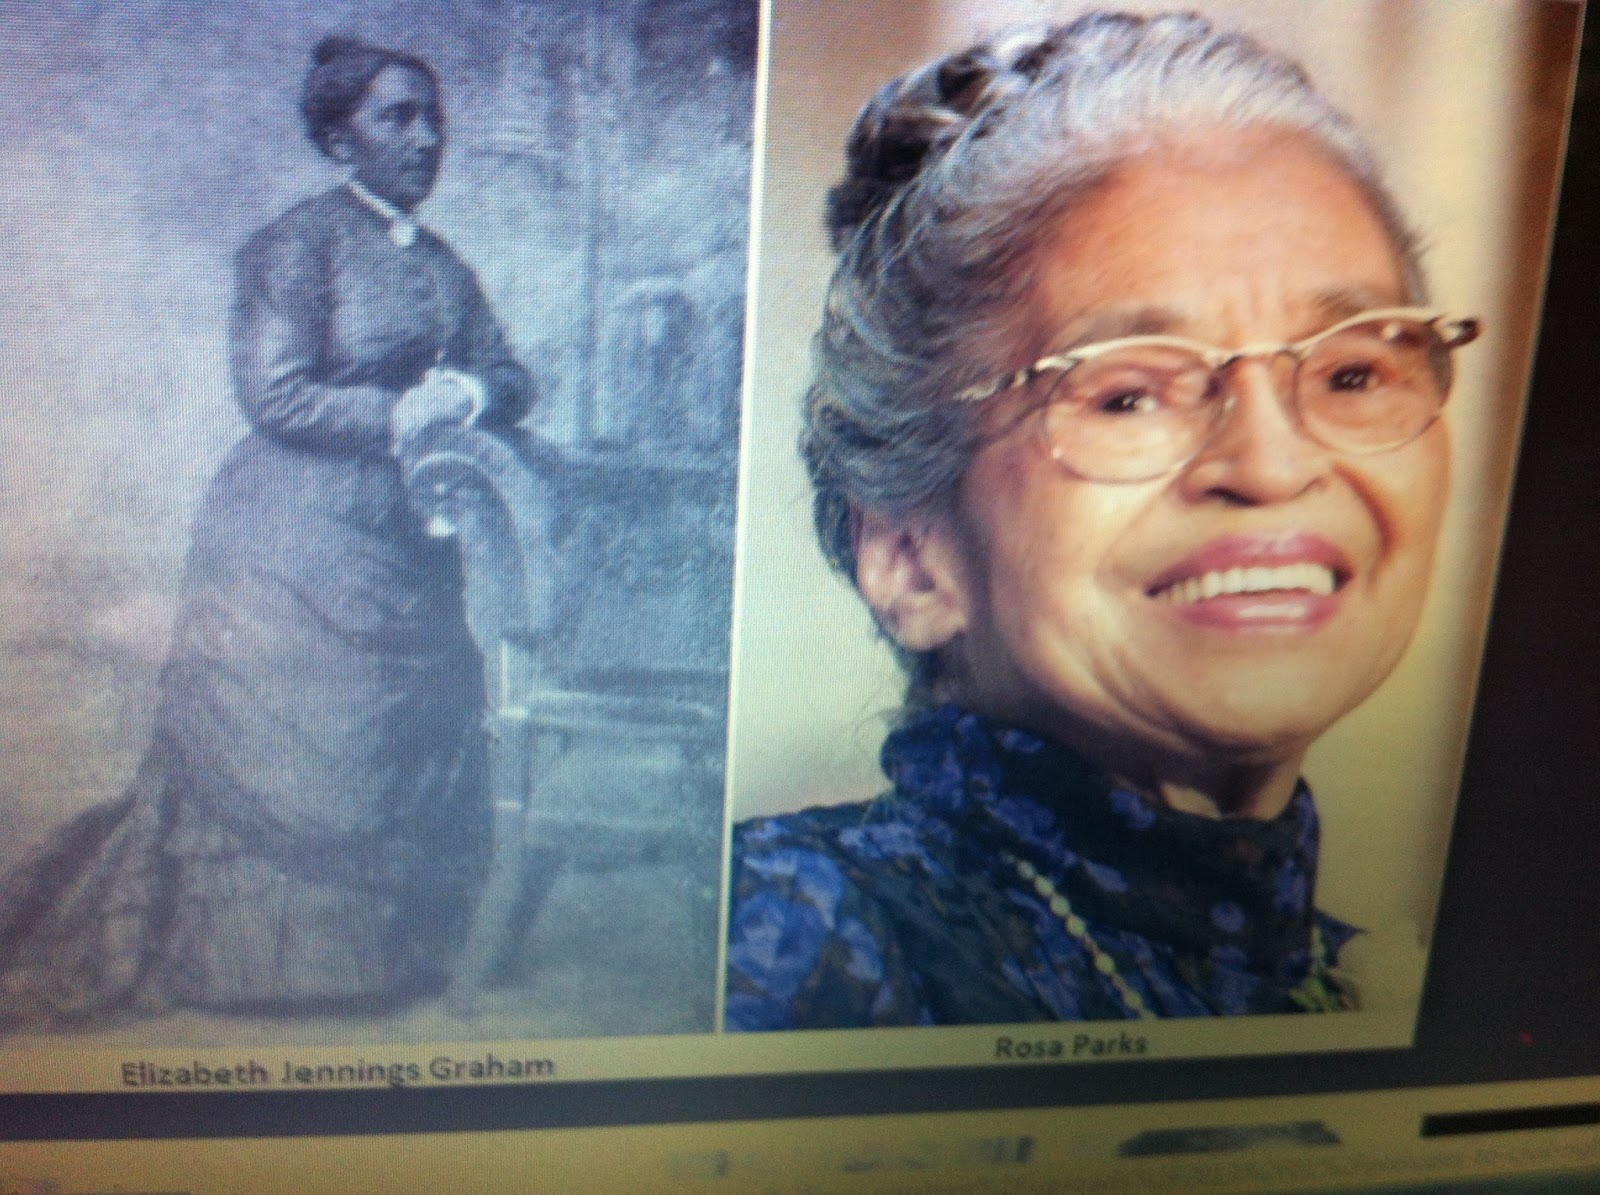 elizabeth jennings graham Today's black educator for #blackhistorymonth is elizabeth jennings graham, born in nyc in 1827pictwittercom  twitter may be over capacity or experiencing a.